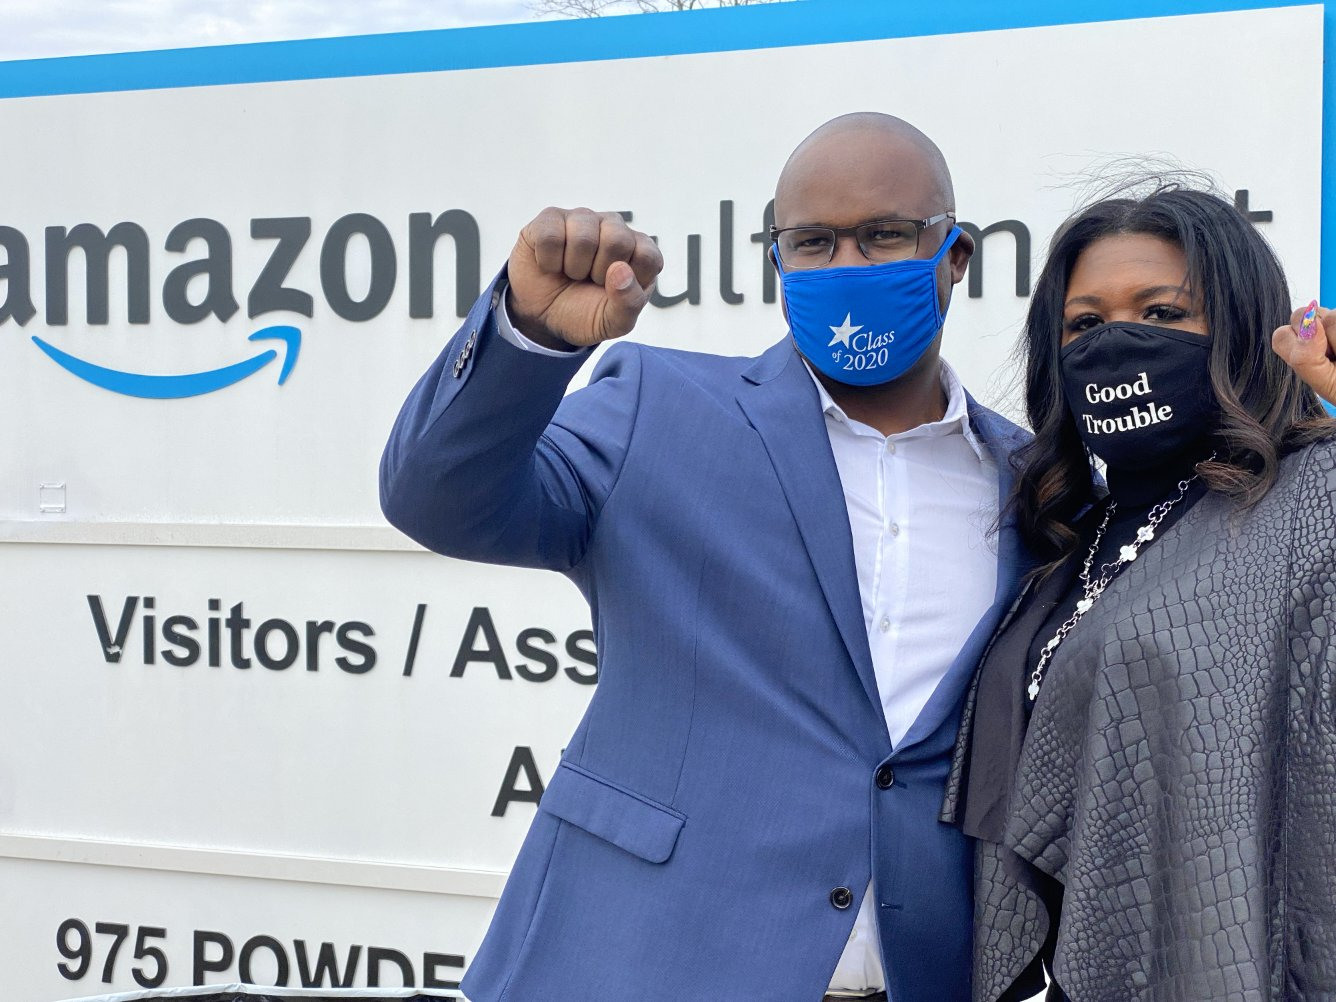 Congressional Reps. Jamaal Bowman and Cori Bush visiting an Amazon union drive in Bessemer, Alabama. (Courtesy of Rep. Bowman's Office)